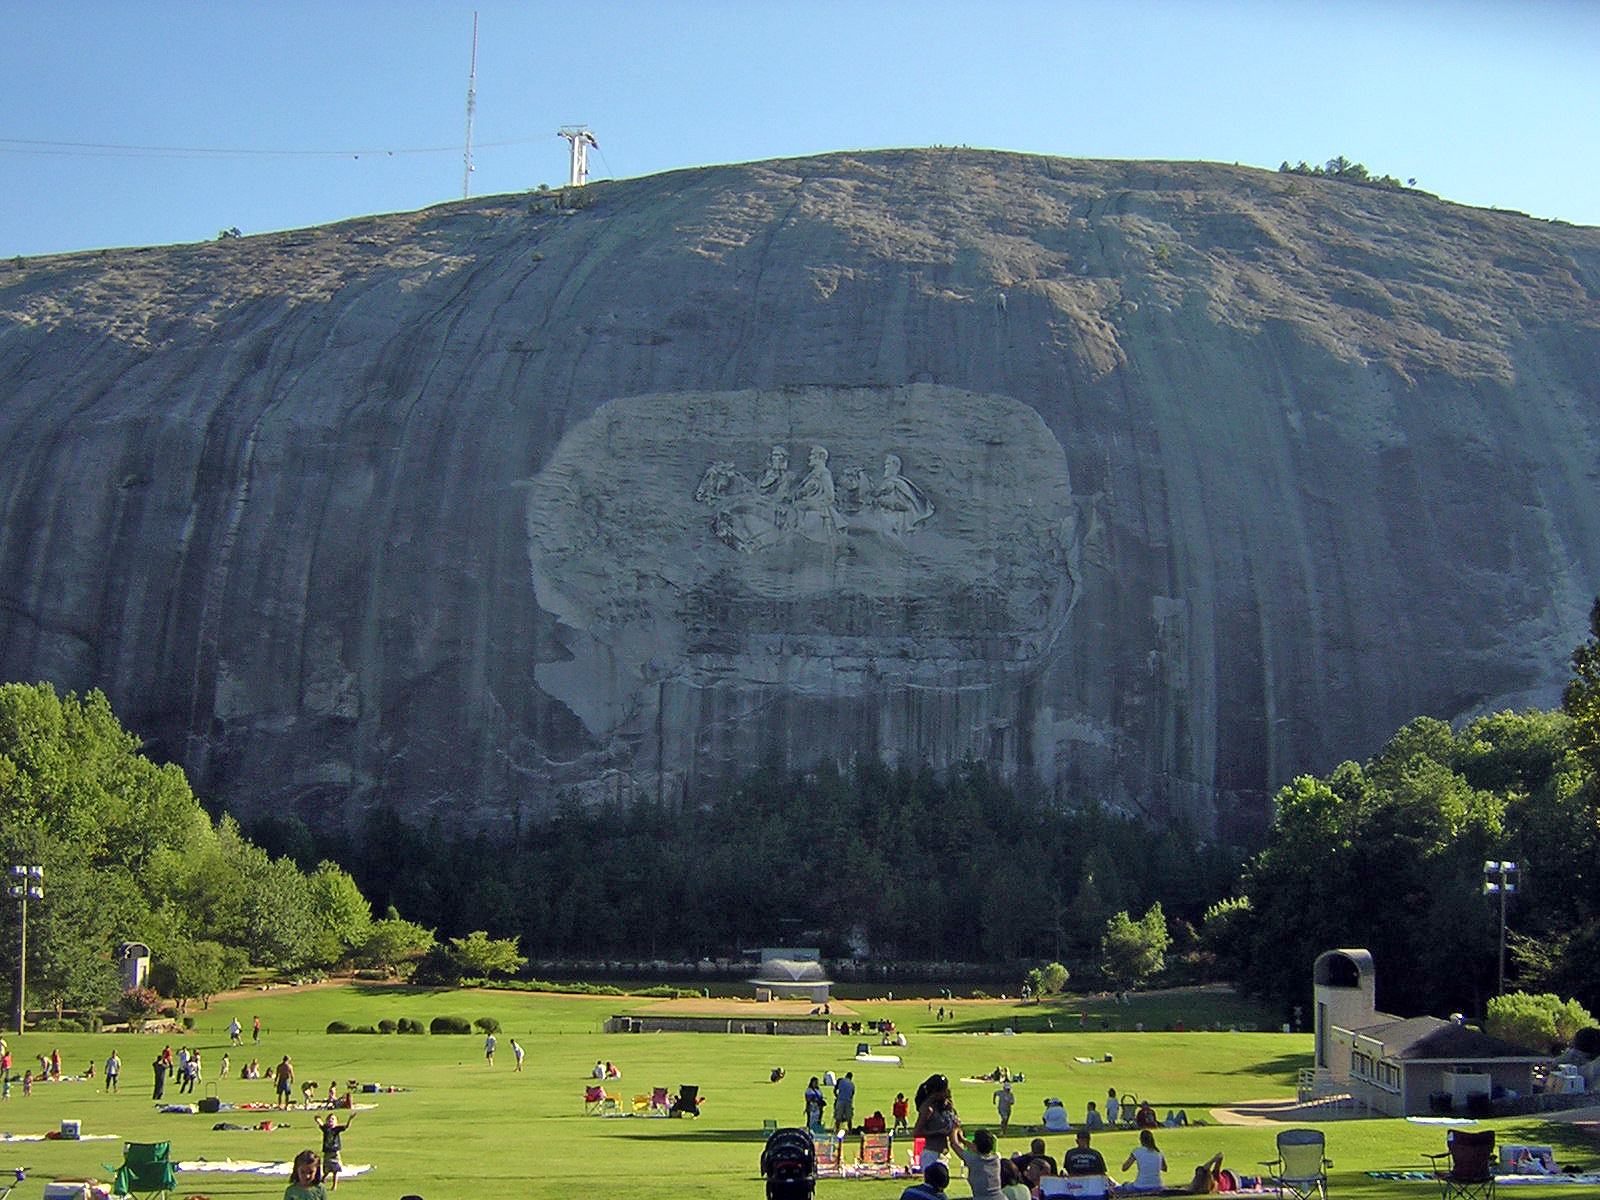 https://upload.wikimedia.org/wikipedia/commons/f/ff/StoneMountain.jpg